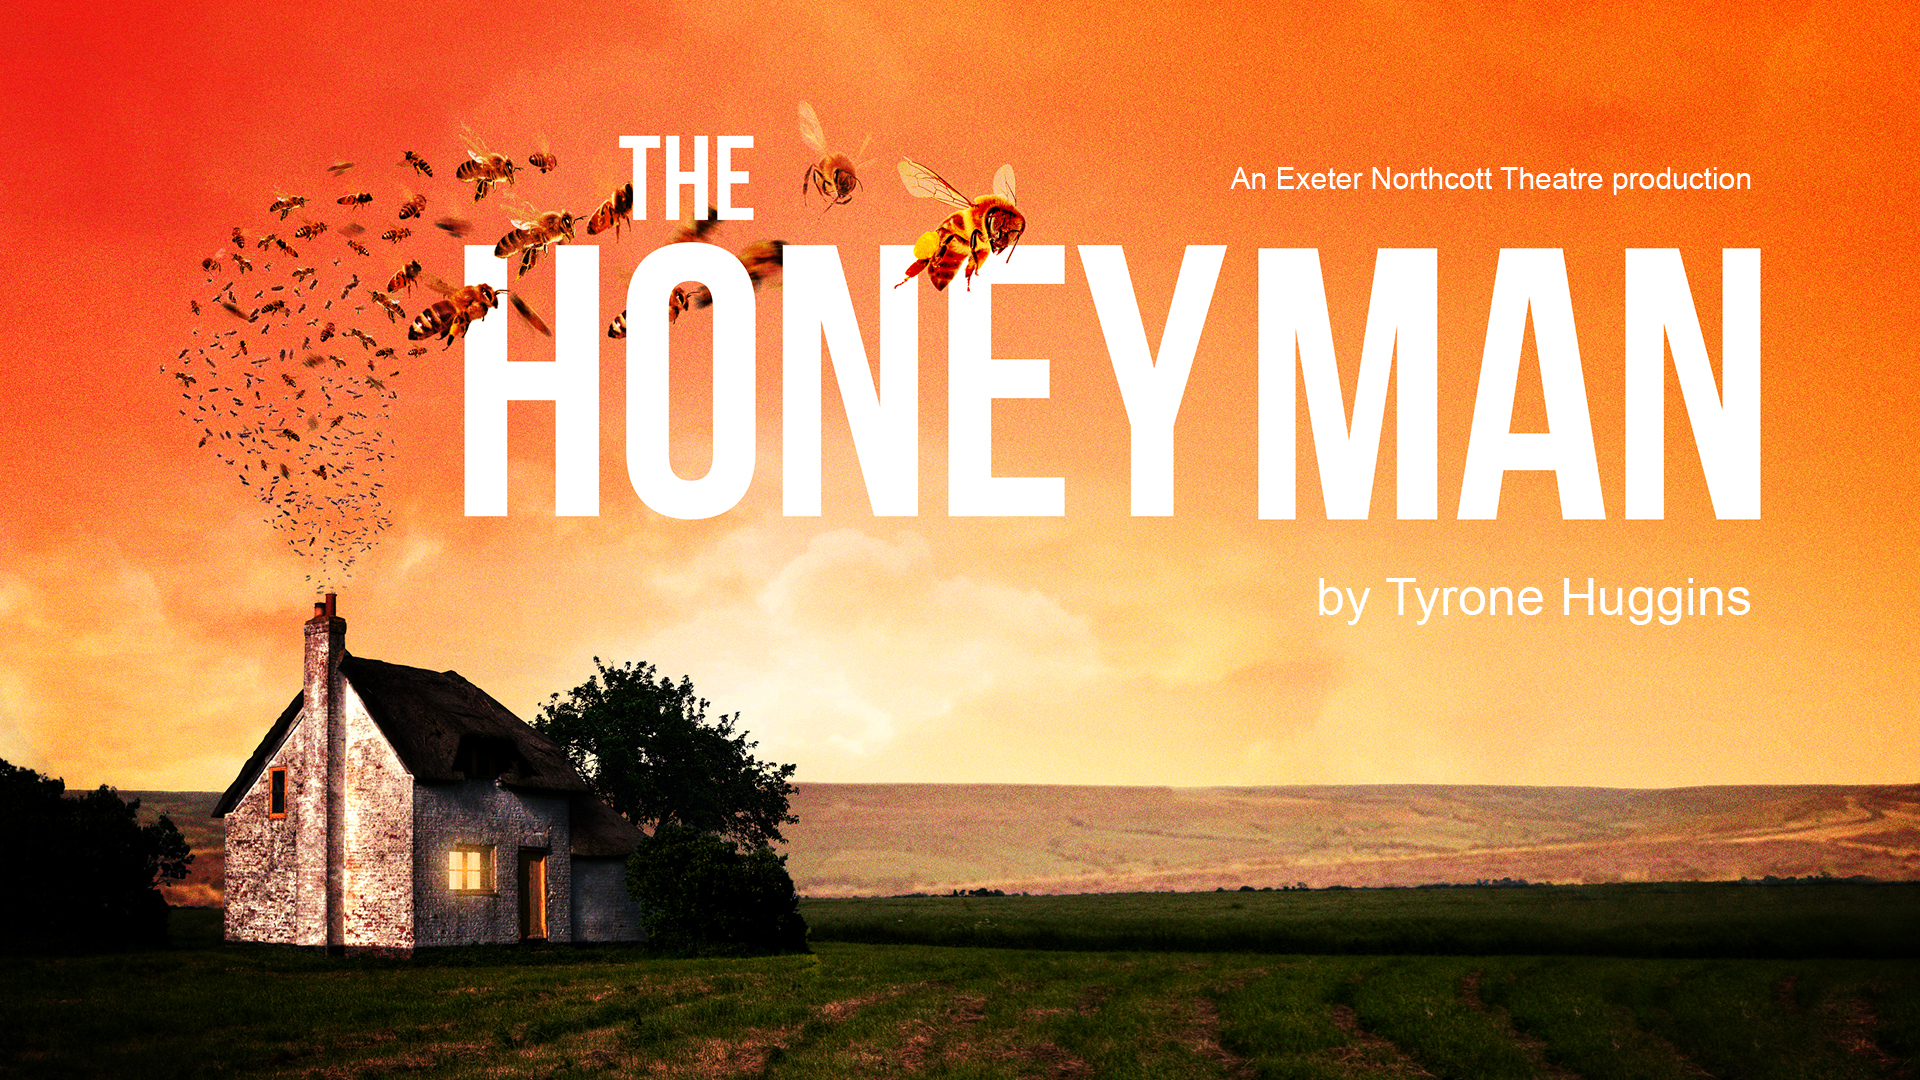 The Honey Man promotional image - a swarm of bees flies out of the chimney of a lonely cottage against a bright orange background